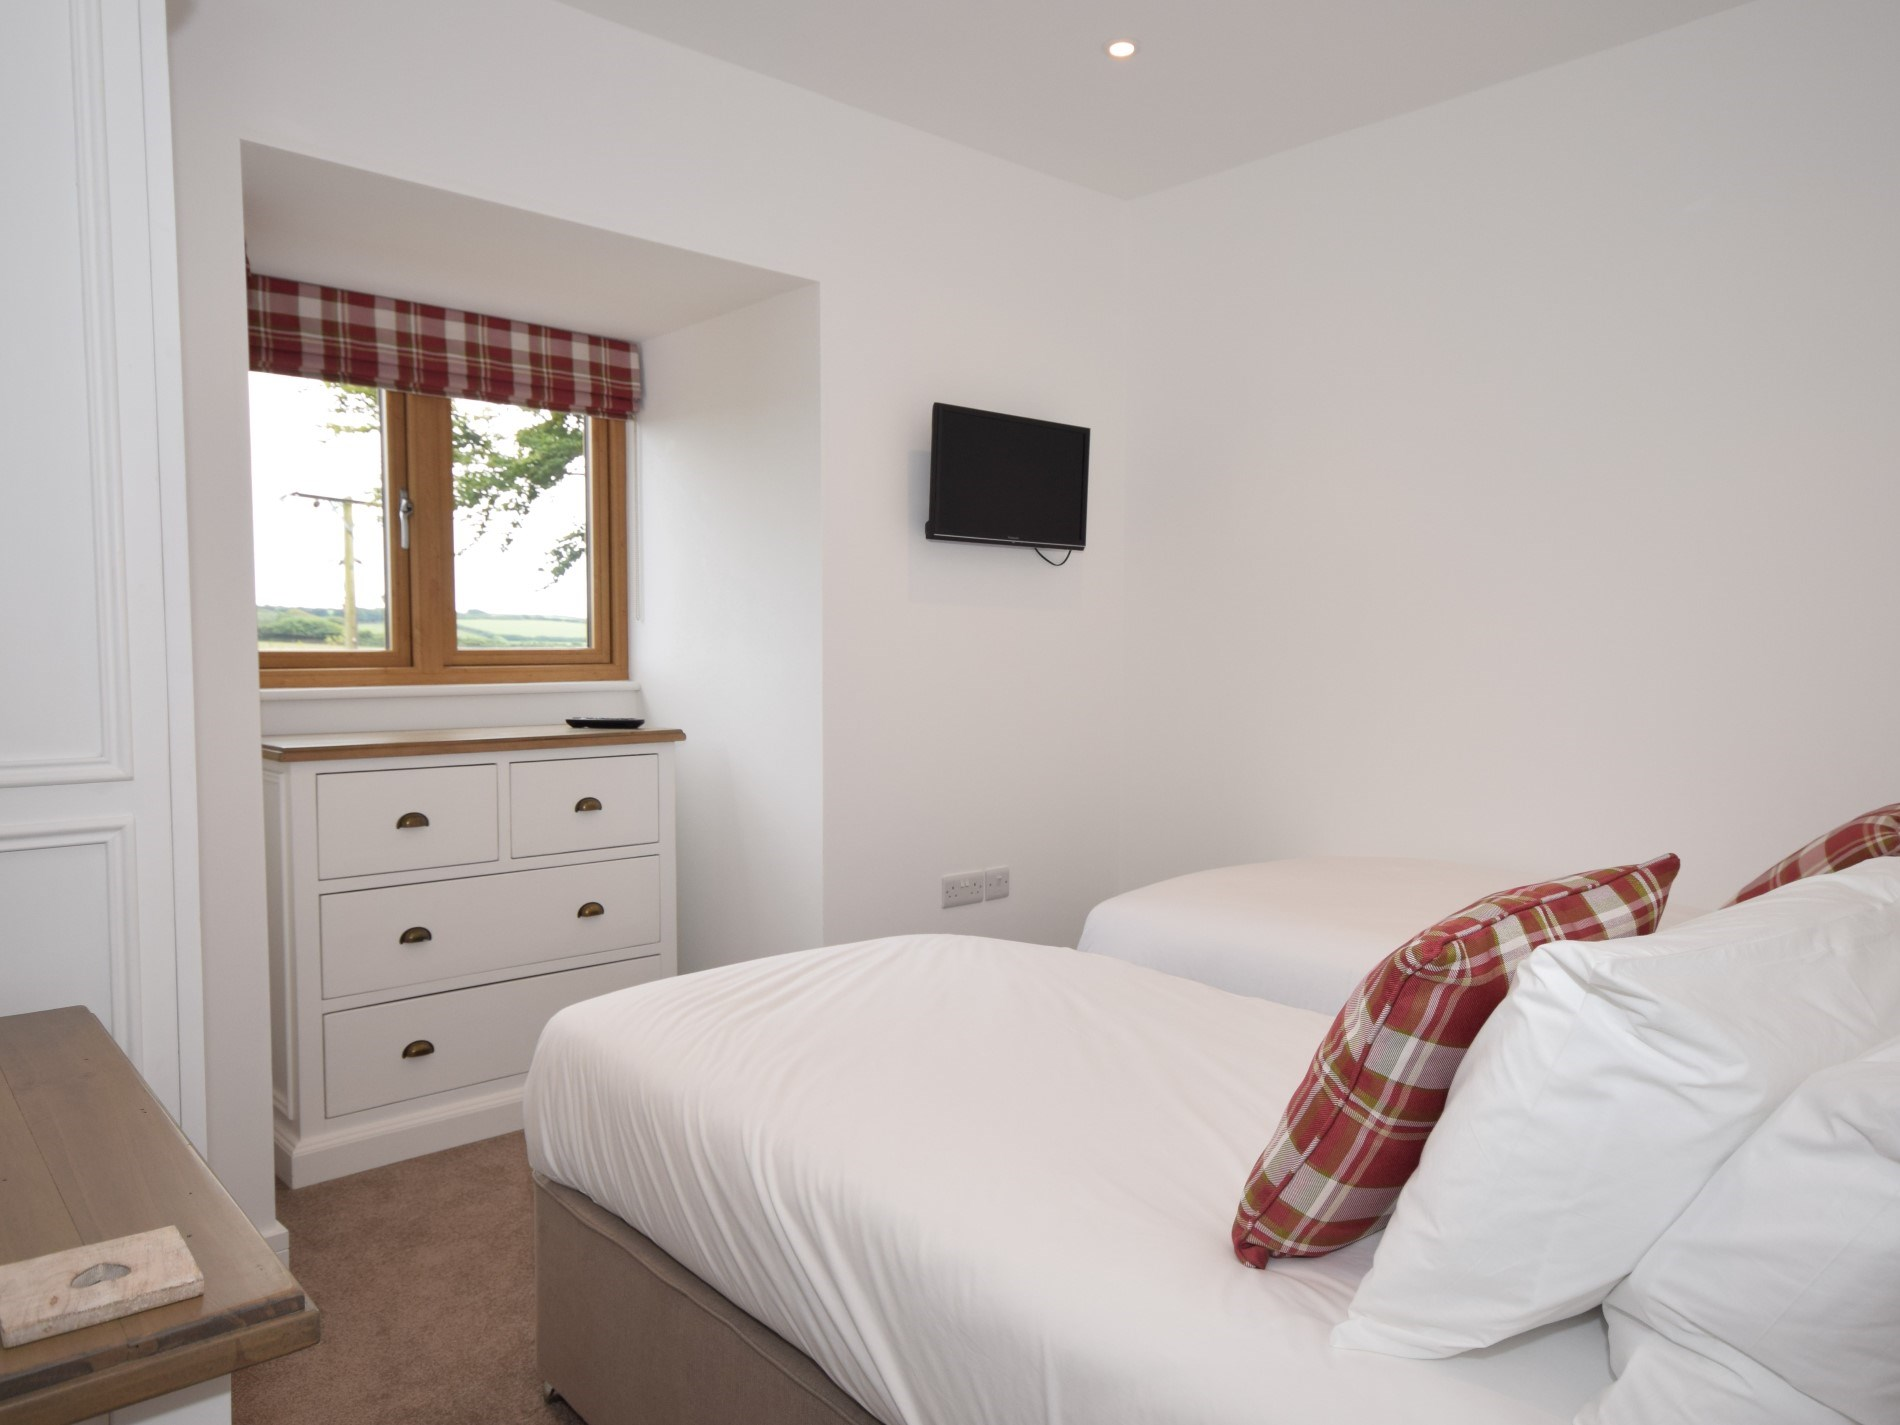 4 Bedroom Cottage in Ilfracombe, Devon